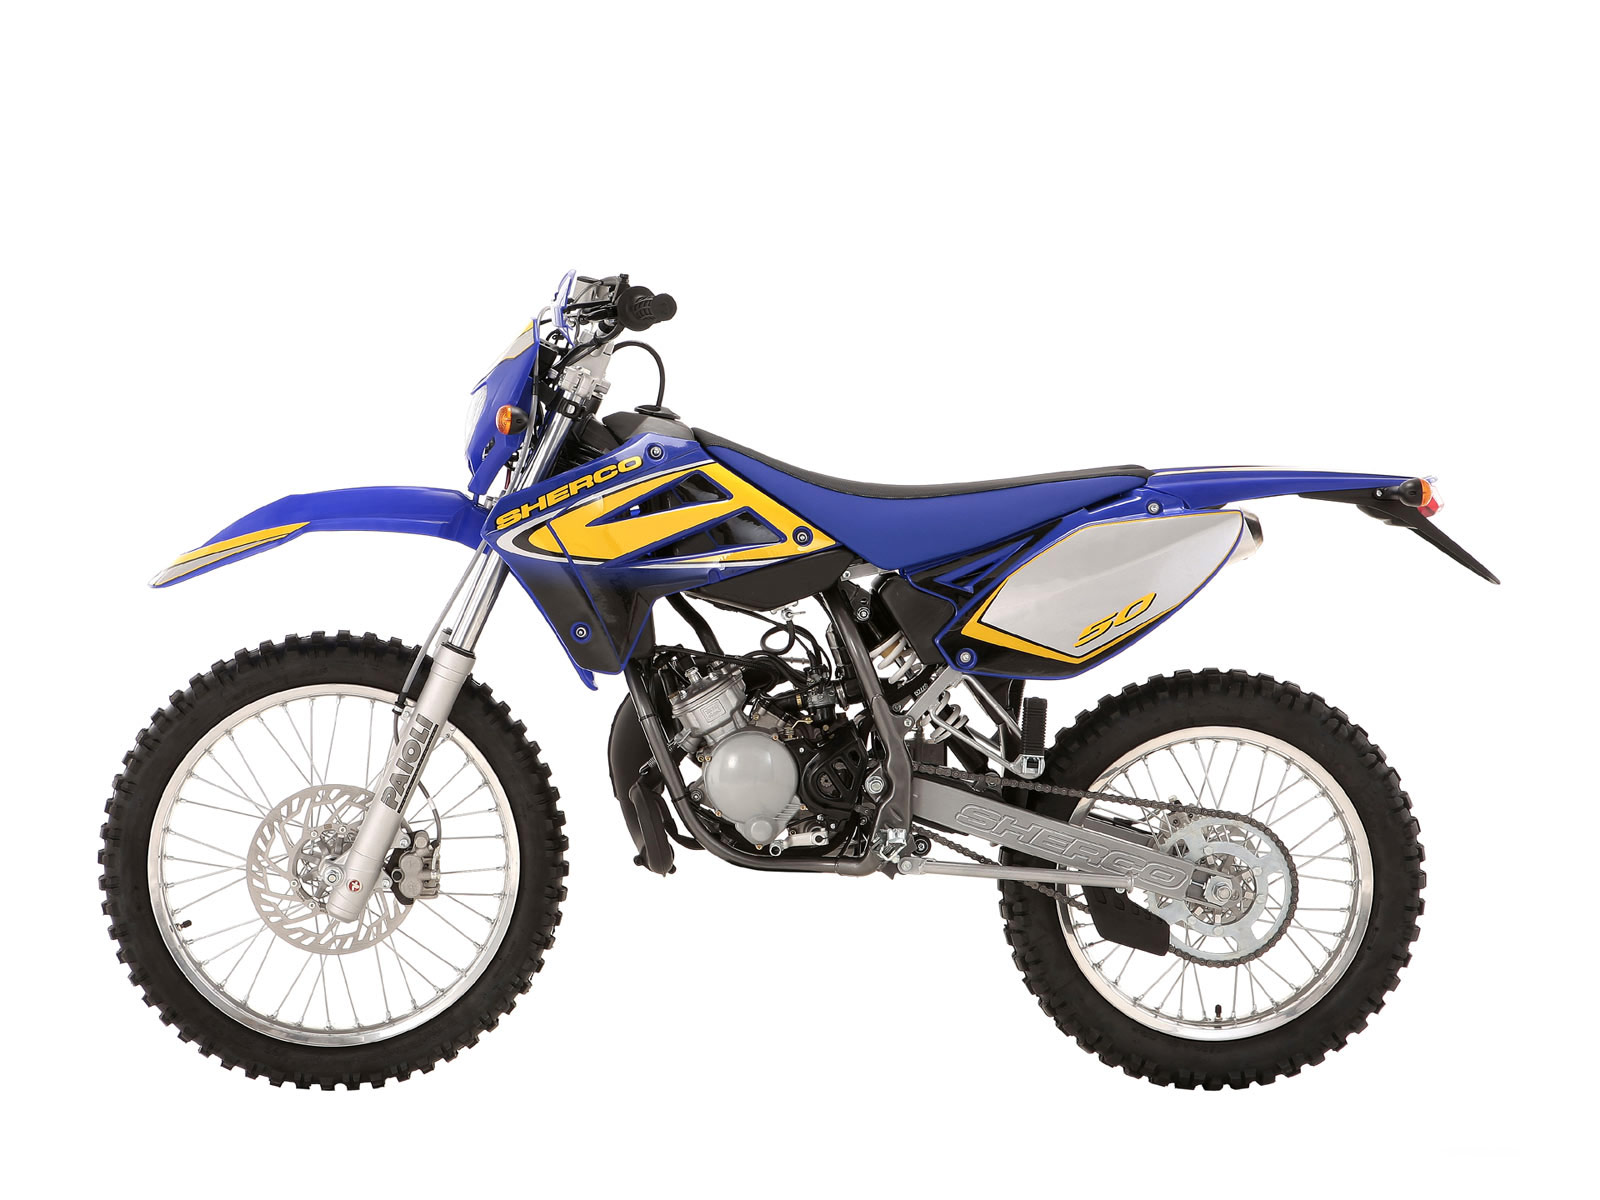 Sherco 125 Enduro Shark Replica images #124635